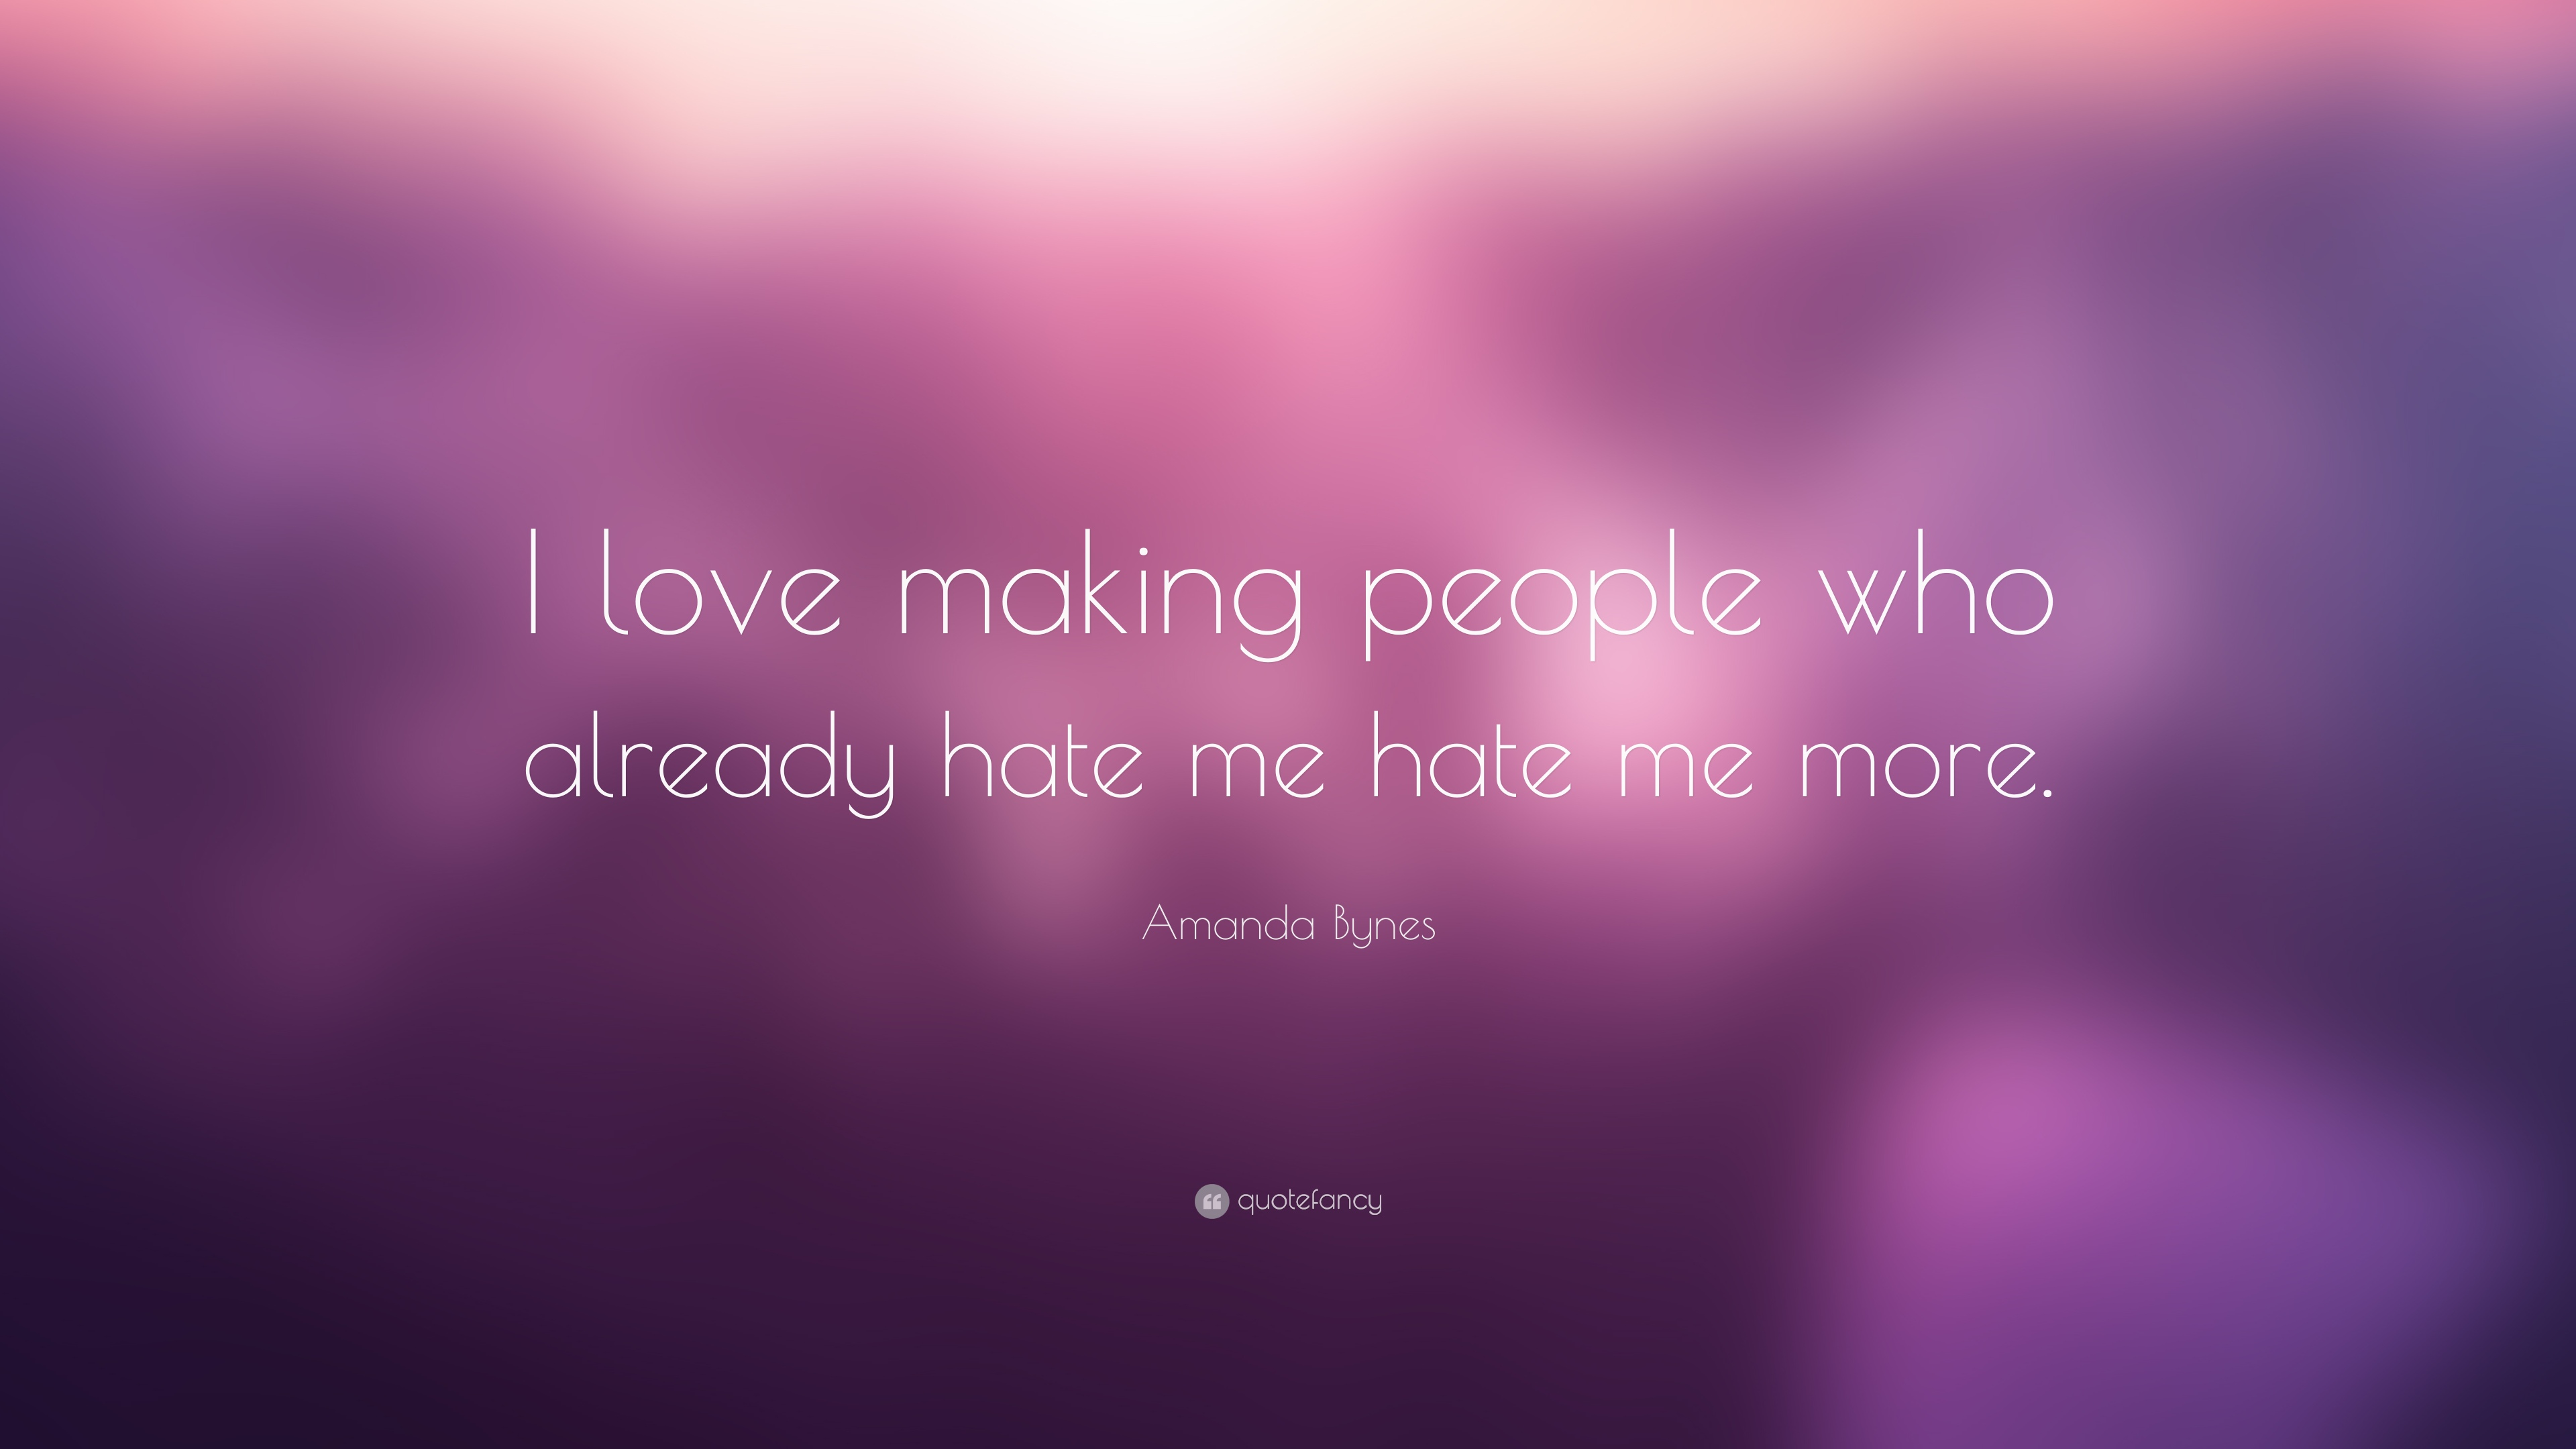 Amanda Bynes Quote I Love Making People Who Already Hate Me Hate